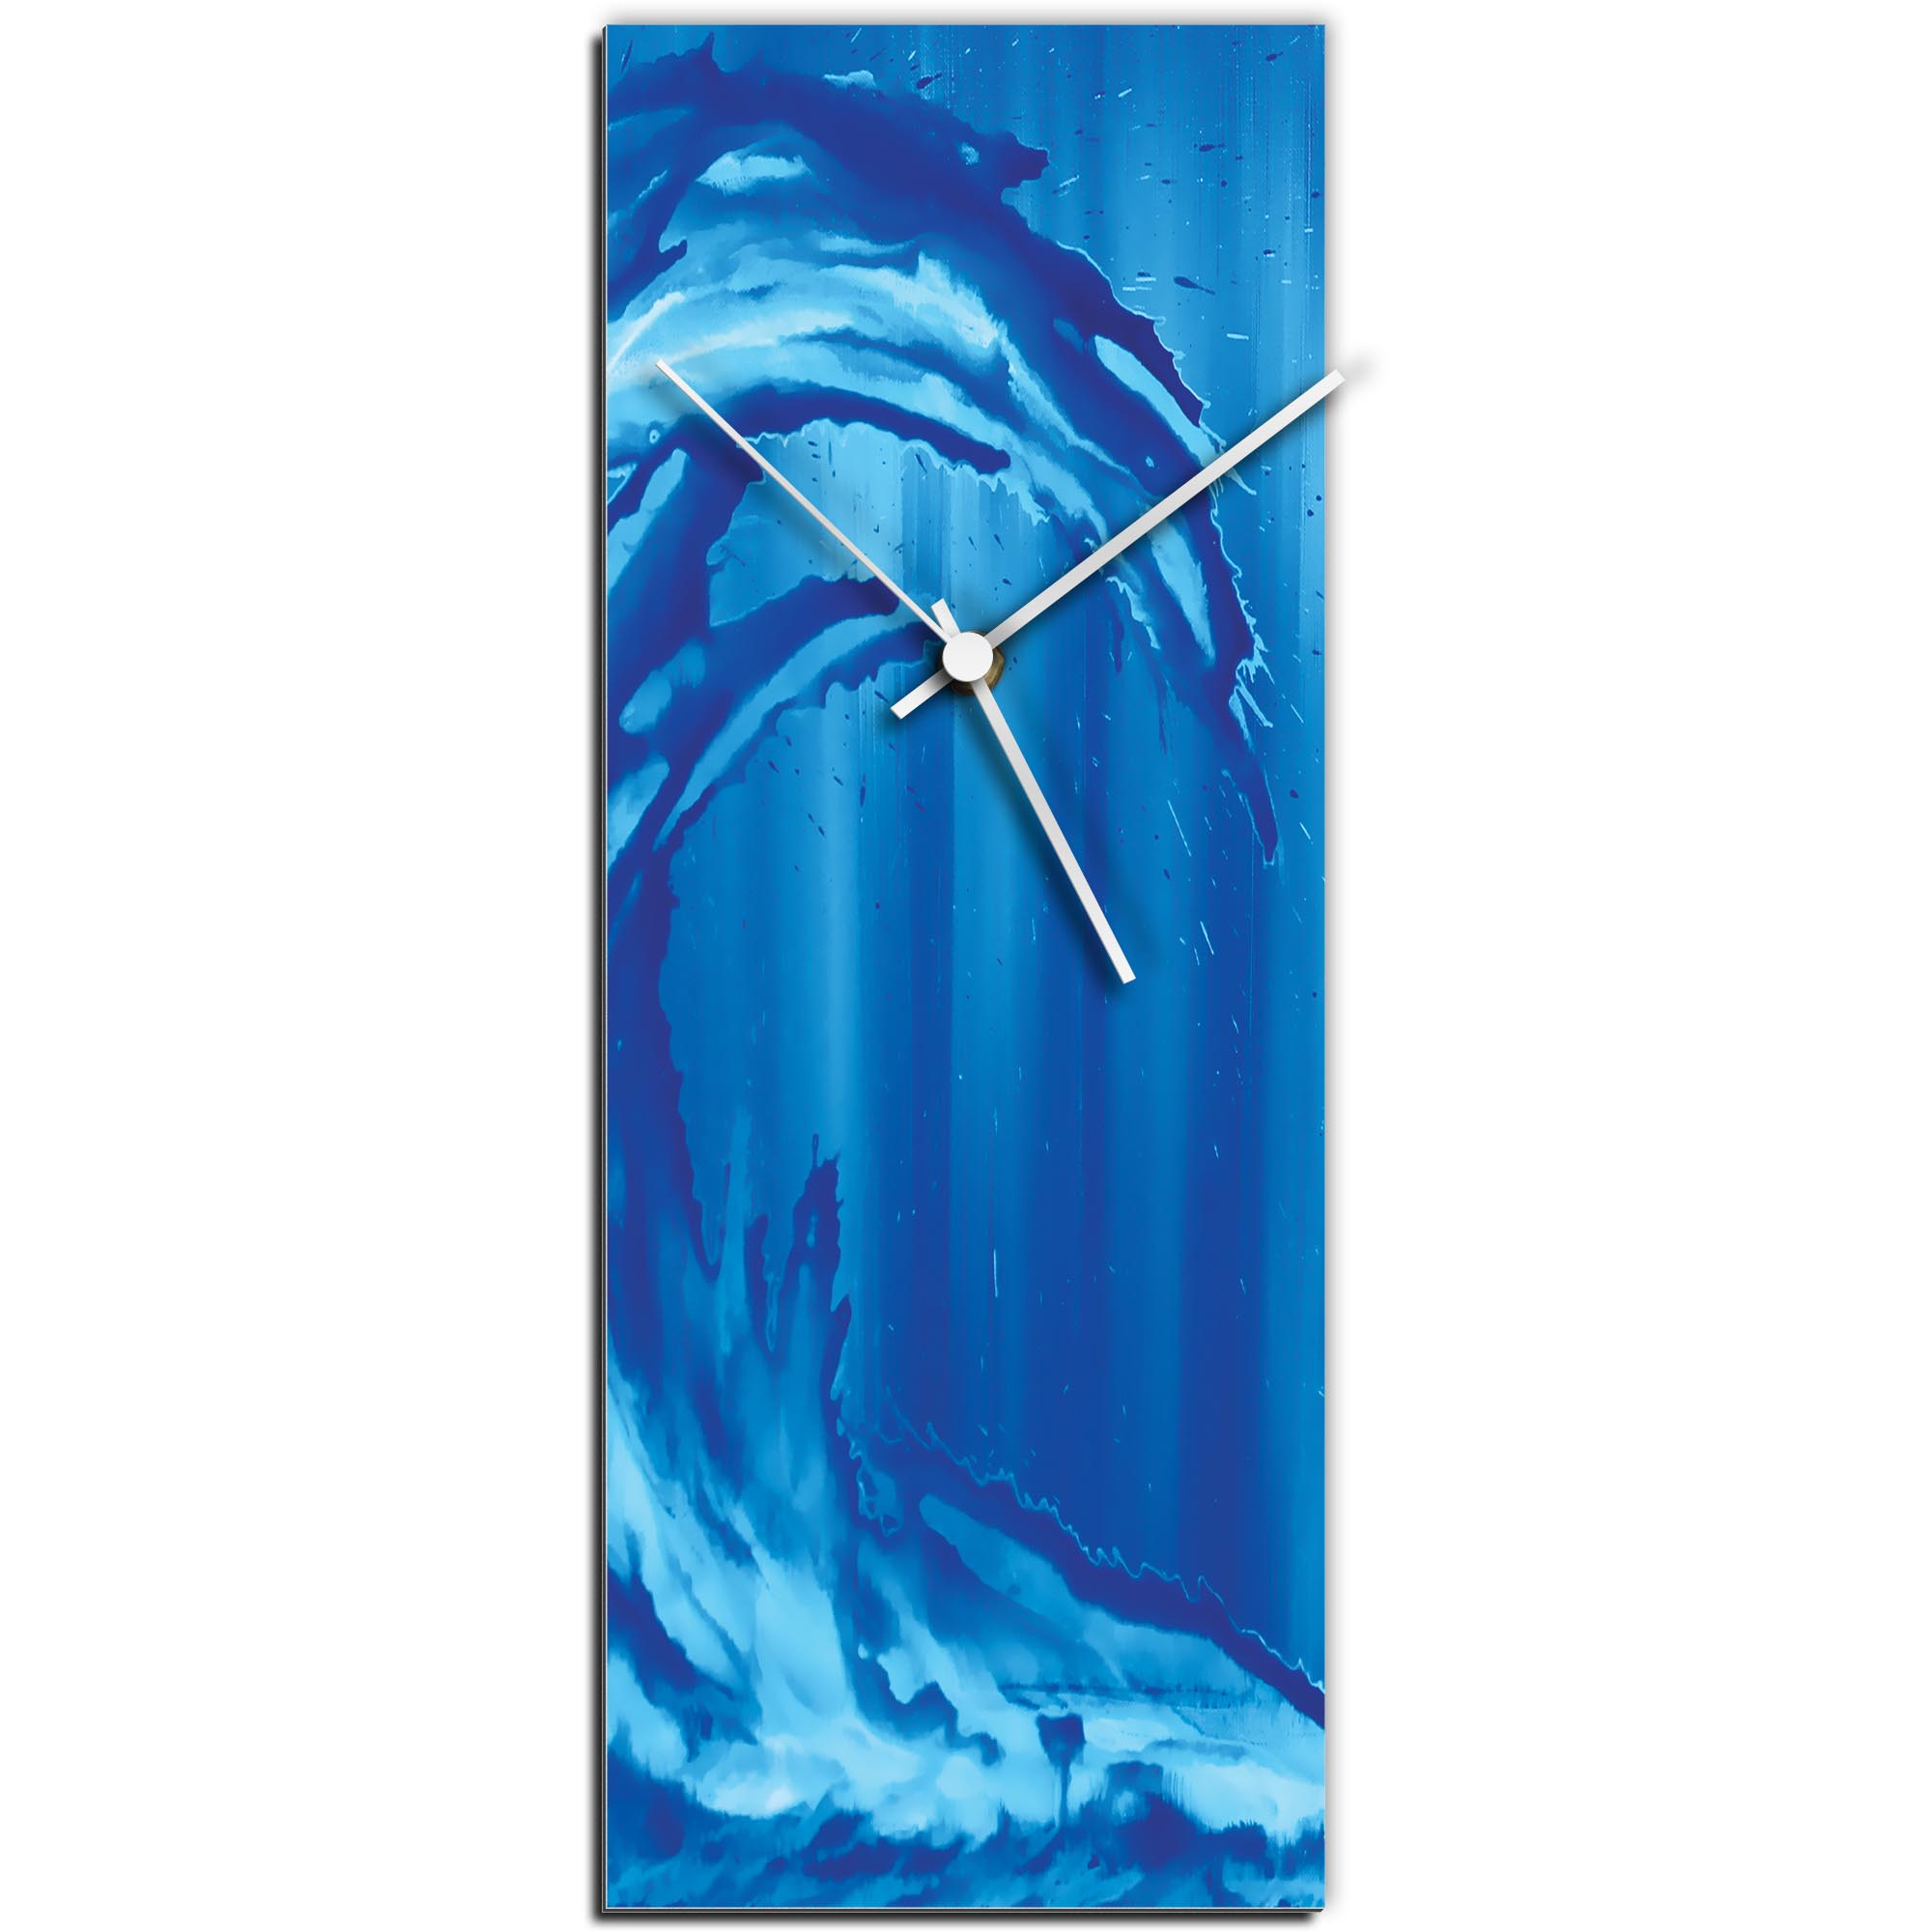 Mendo Vasilevski 'Blue Wave v1 Clock' 6in x 16in Modern Wall Clock on Aluminum Composite